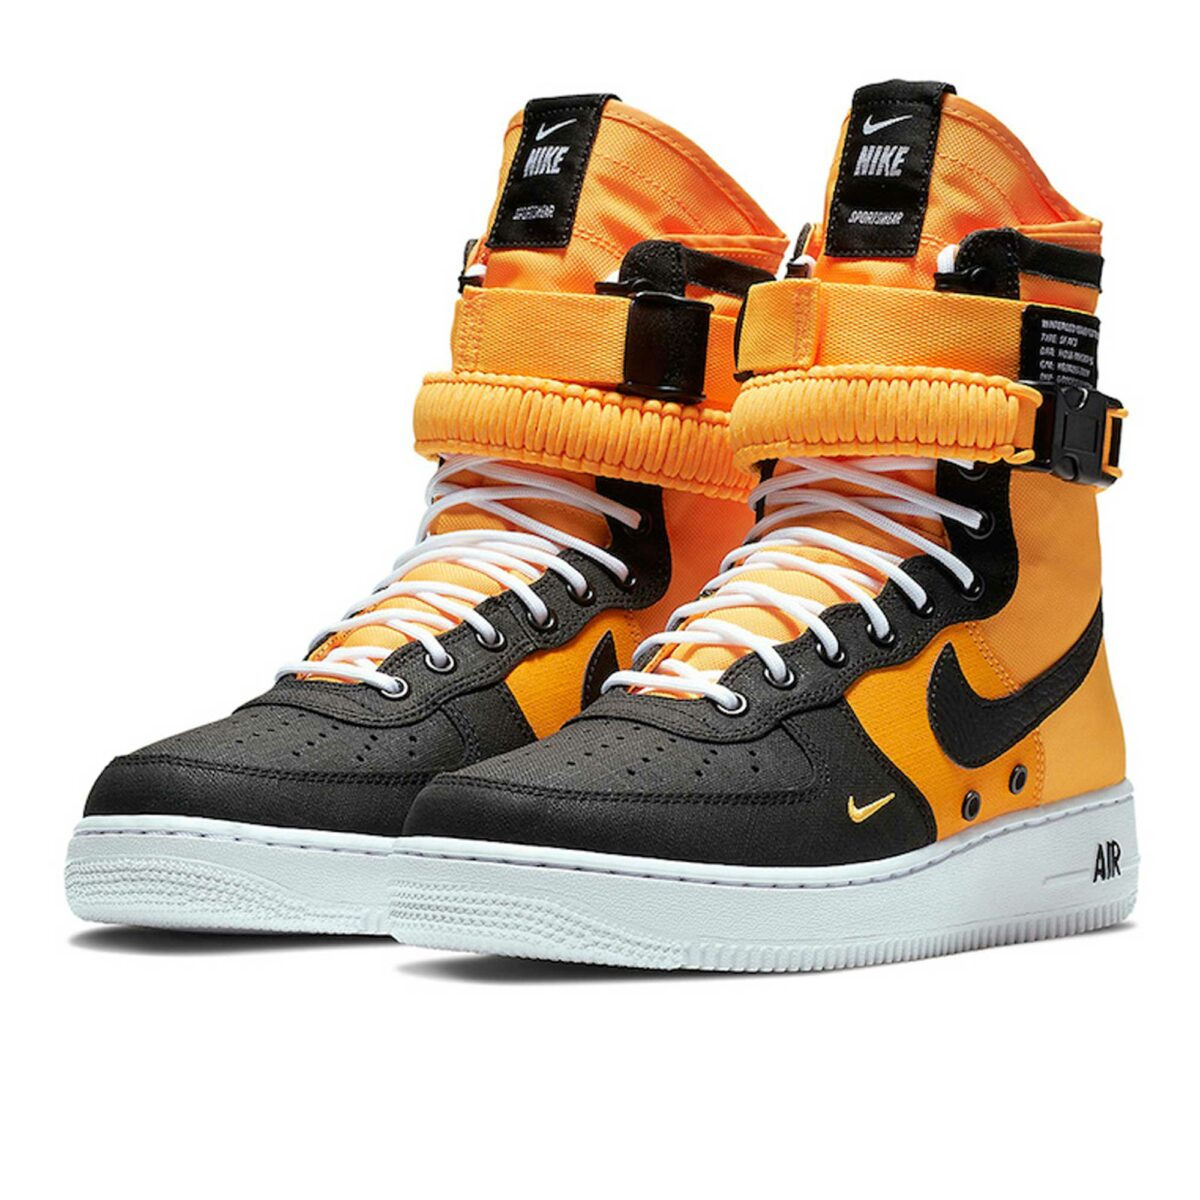 nike sf af1 yellow black high 864024_800 купить